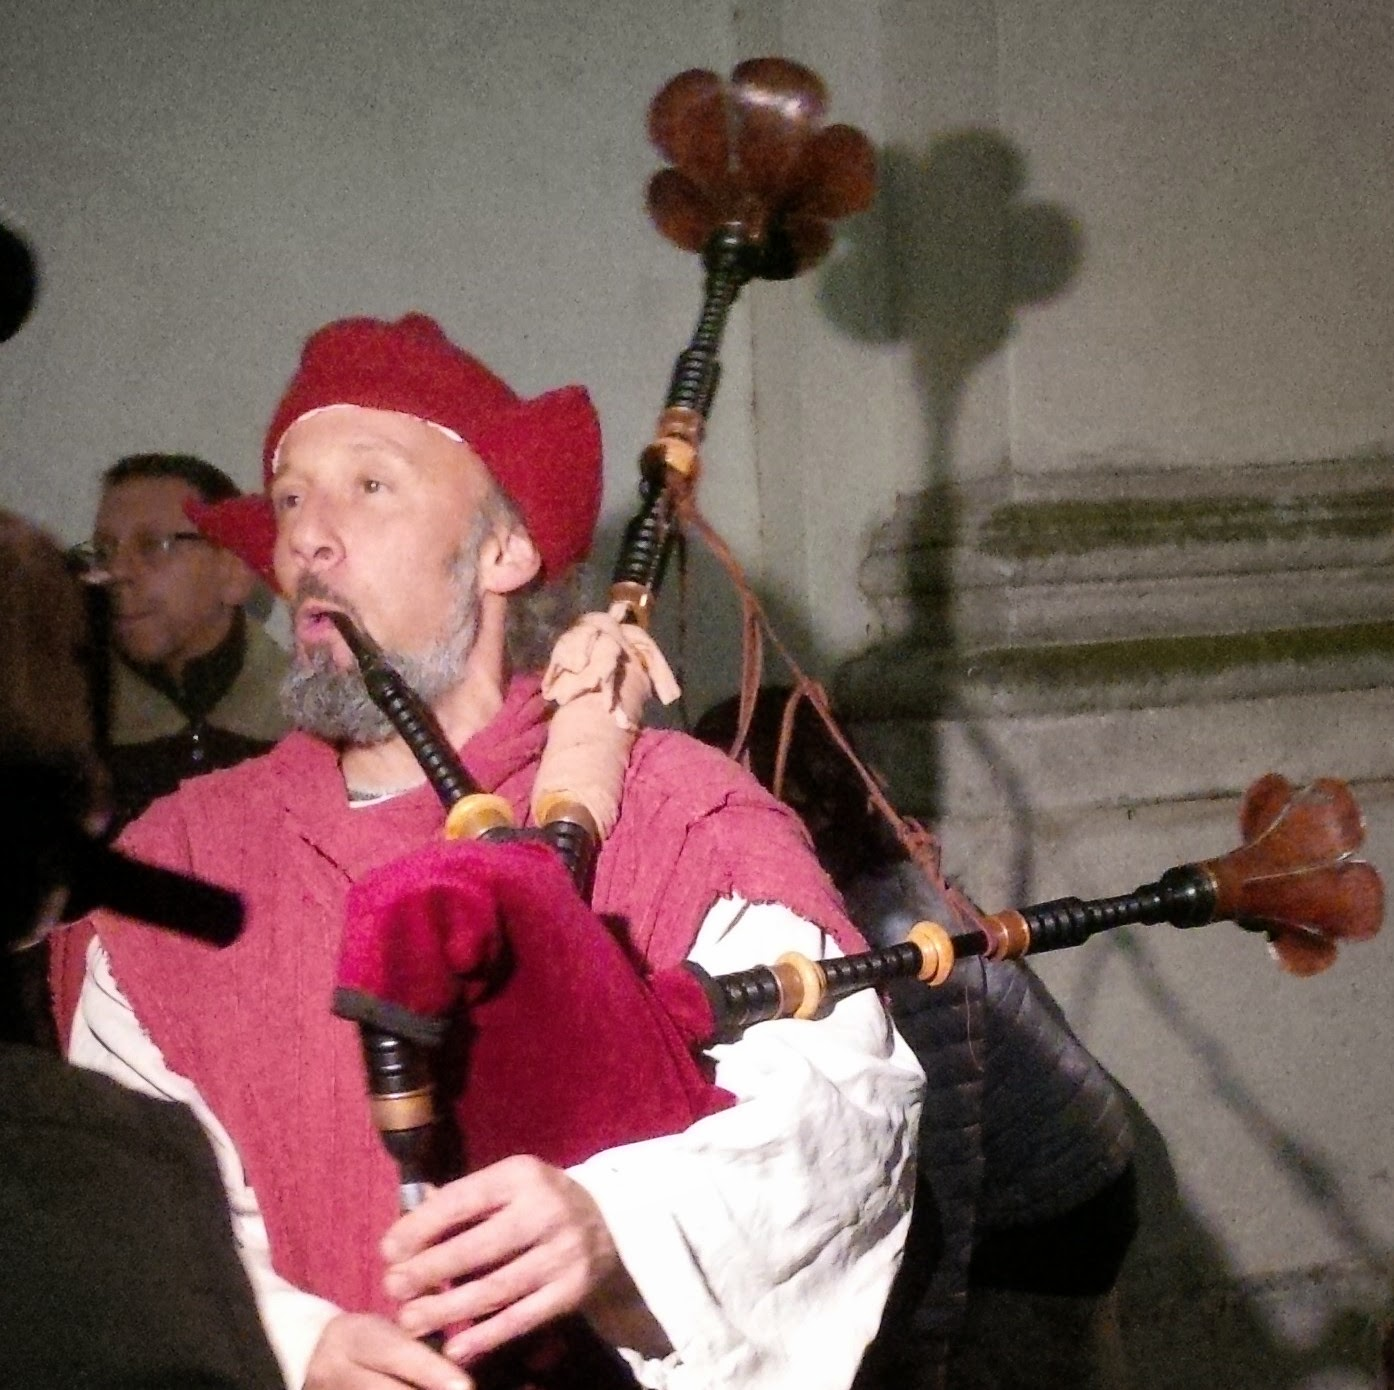 Musician and his bagpipe